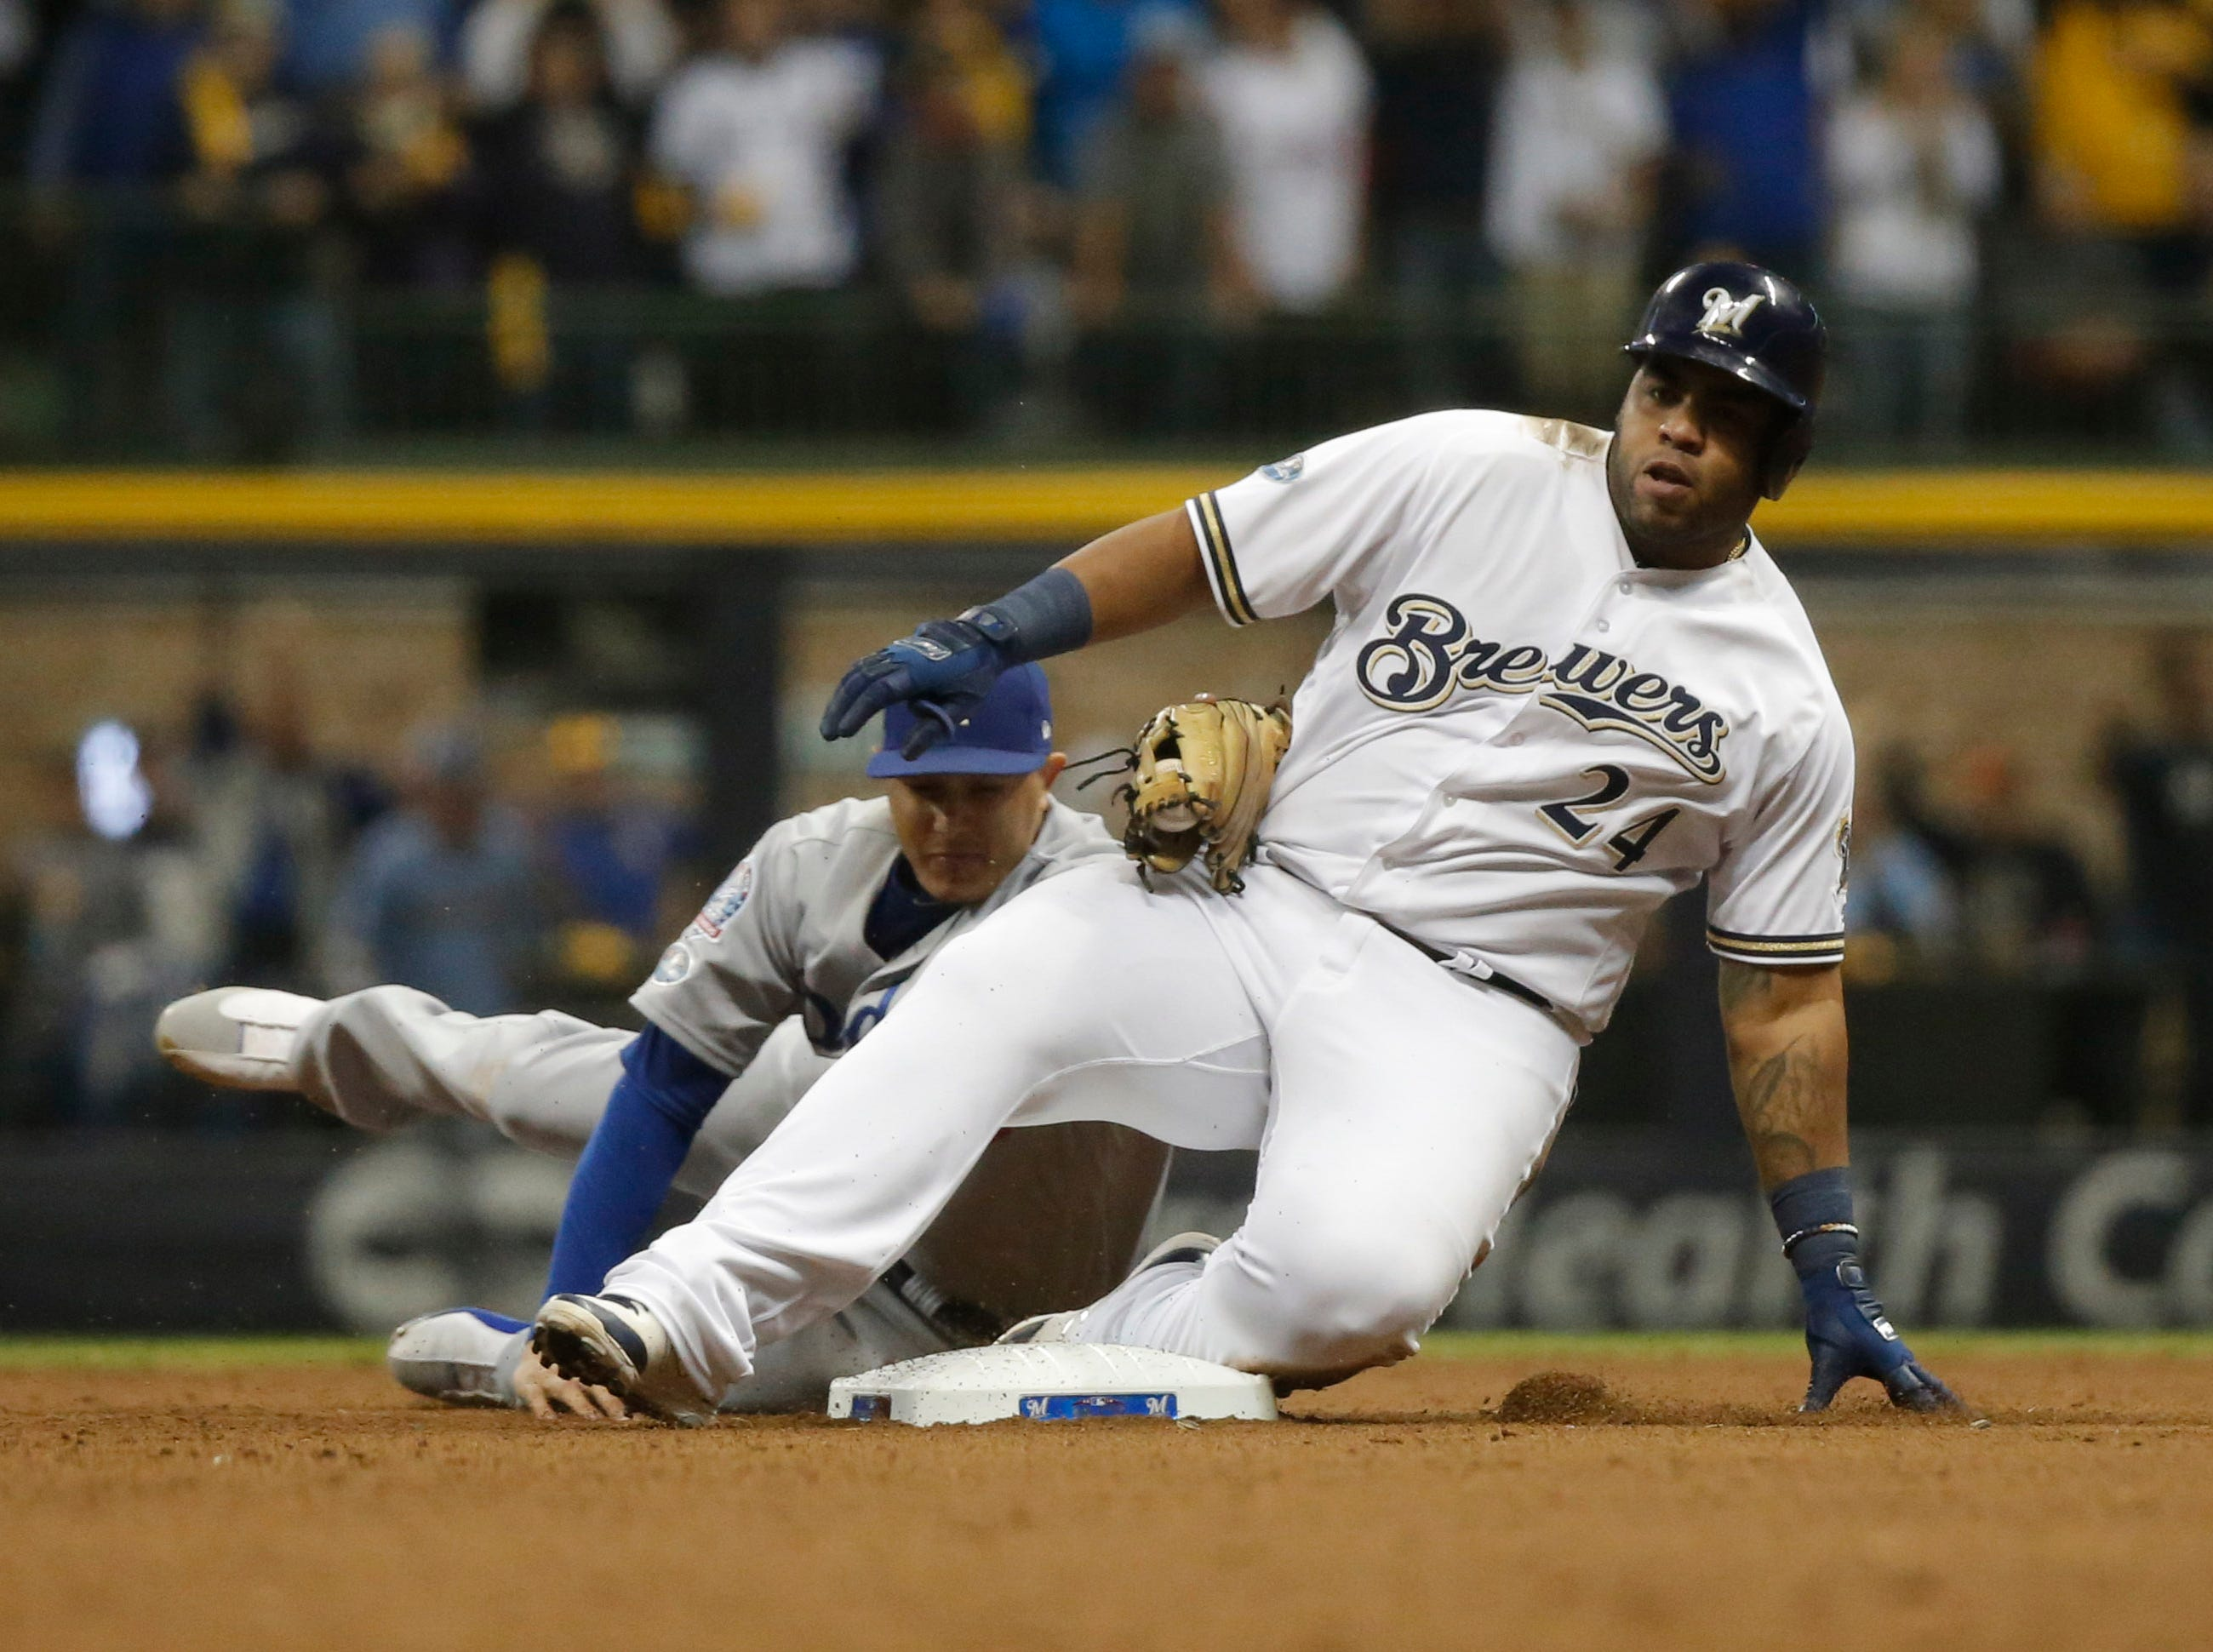 NLDS Game 6: Jesus Aguilar slides into second for a double in the seventh inning.